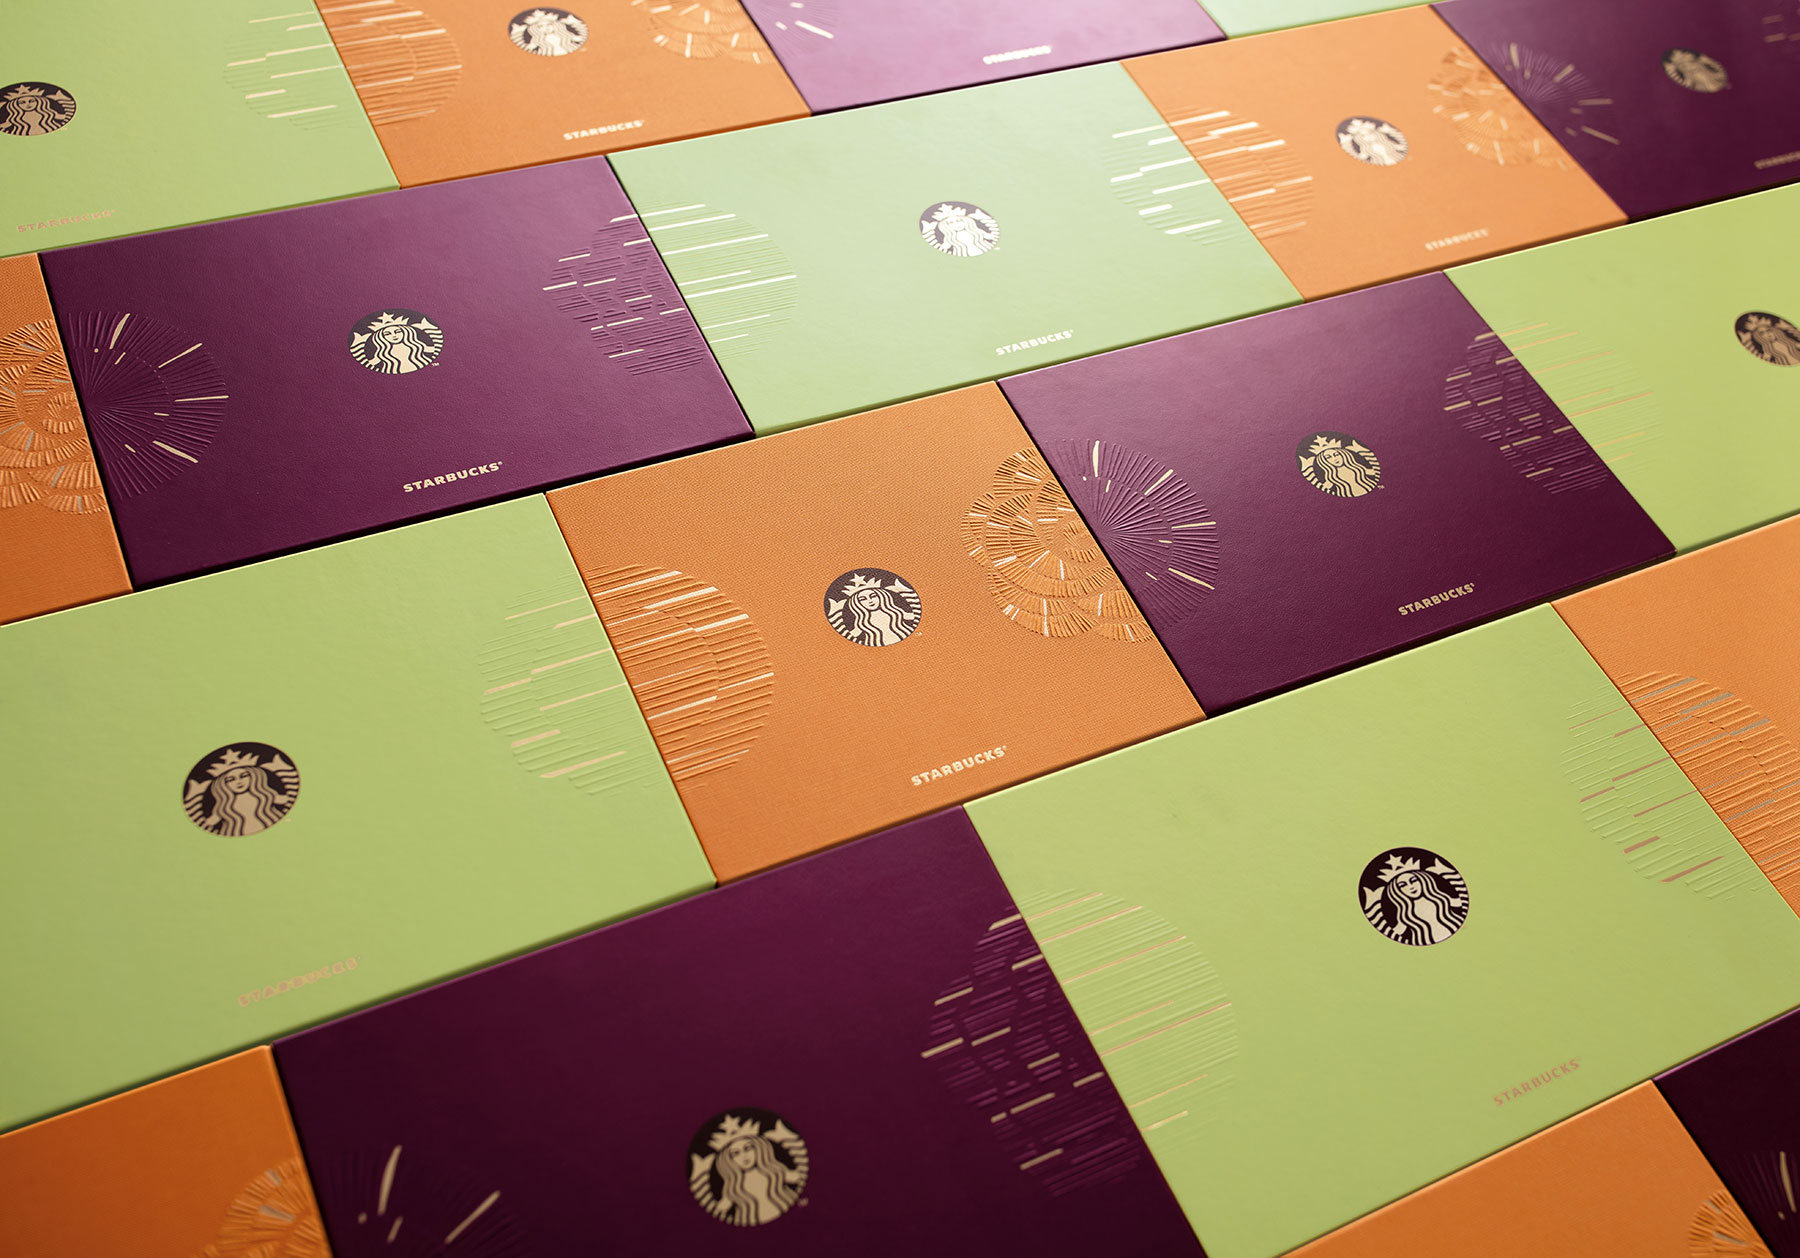 1_DesignBridge_Shanghai_Starbucks_Mooncakes_tiled.jpg